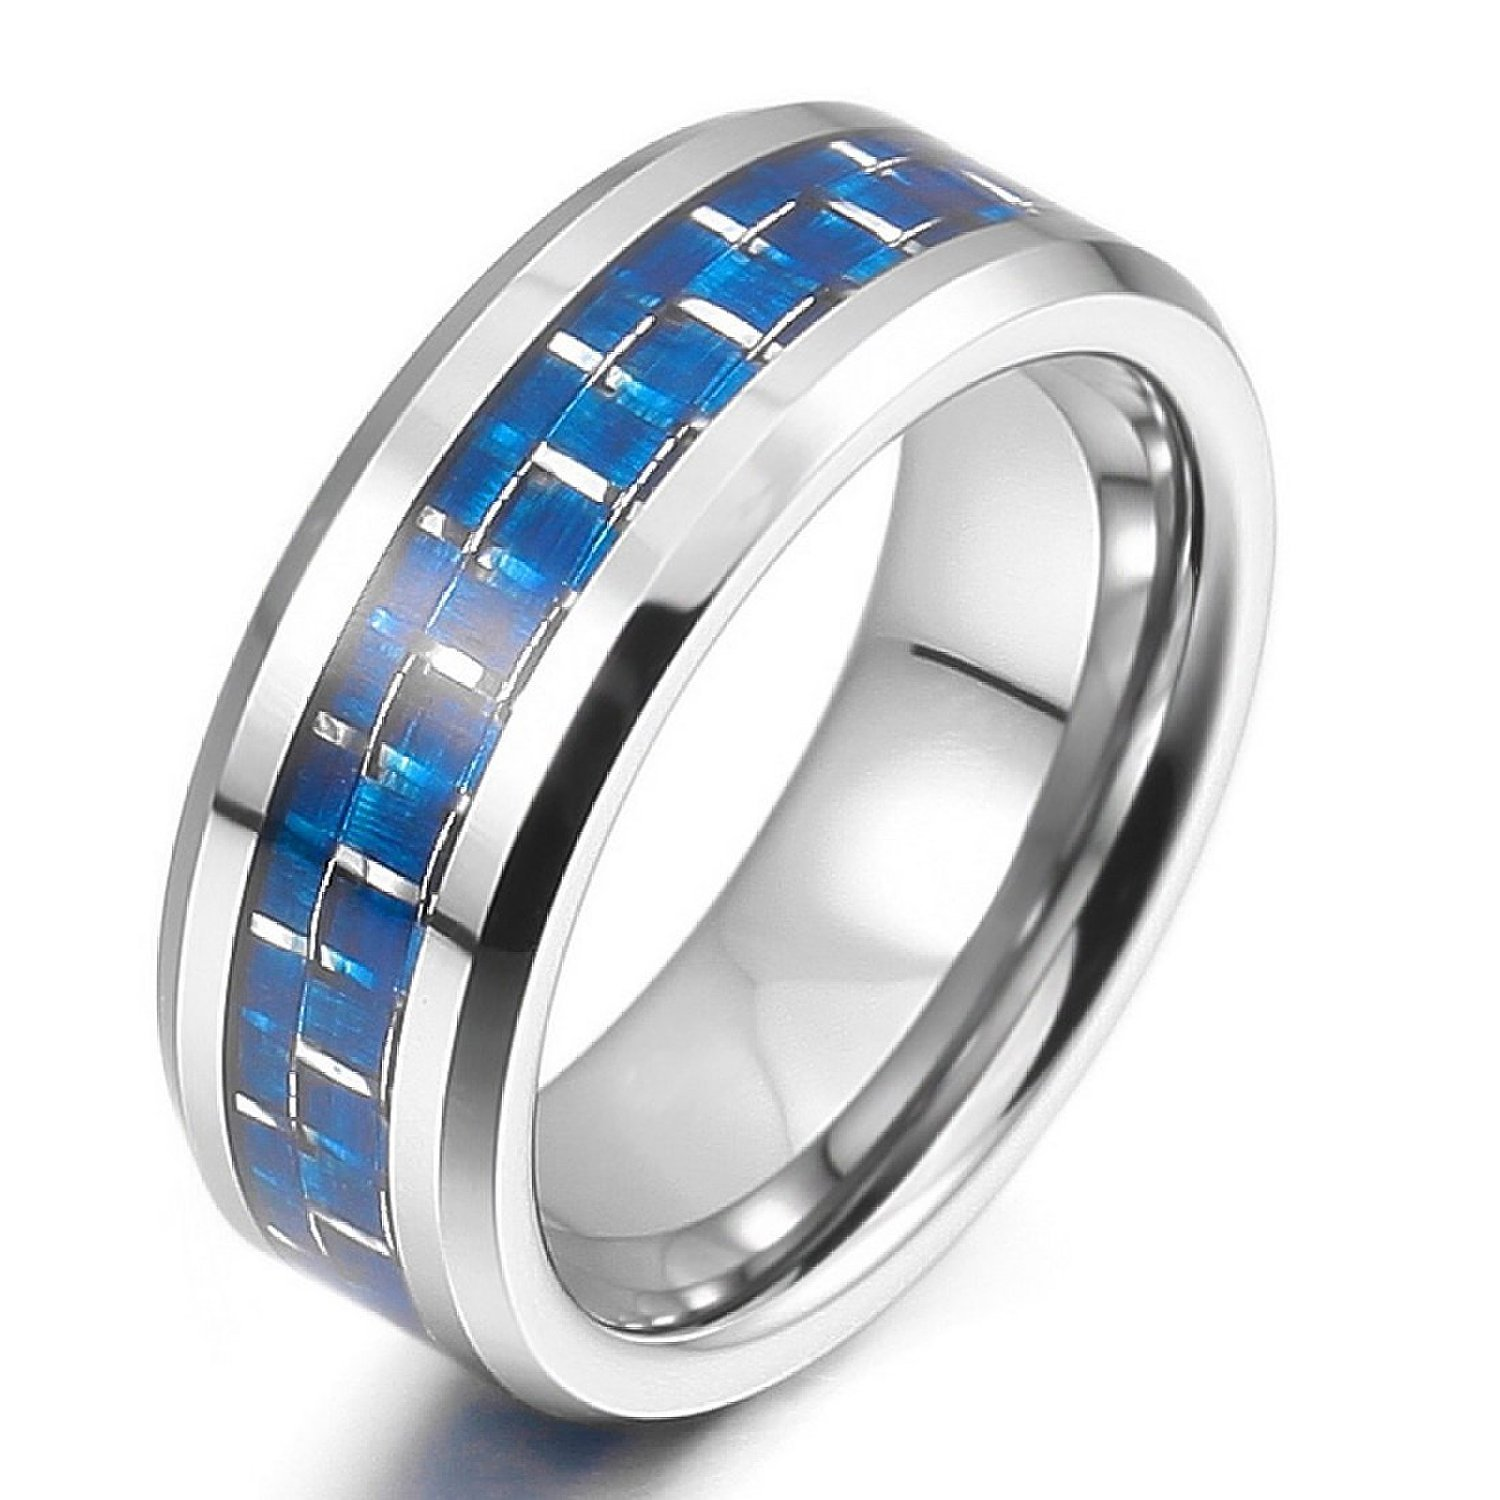 jewelers carbide edge band wedding comfort fiber rings with fit bevel inlay black carbon tungsten beckers diamond